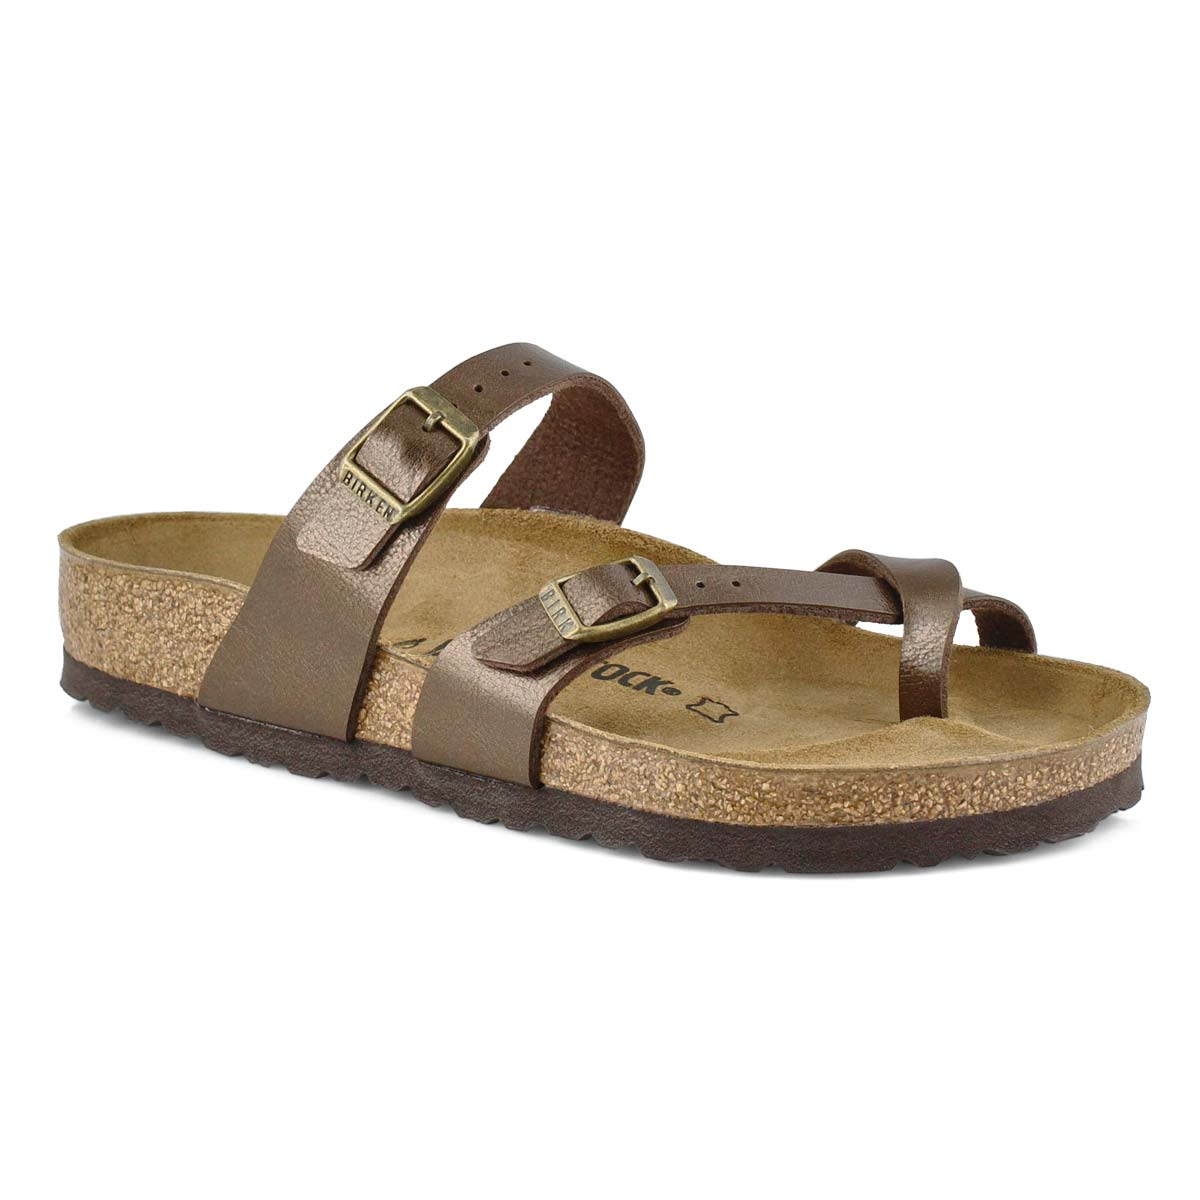 Women's MAYARI BF toffee thong sandals